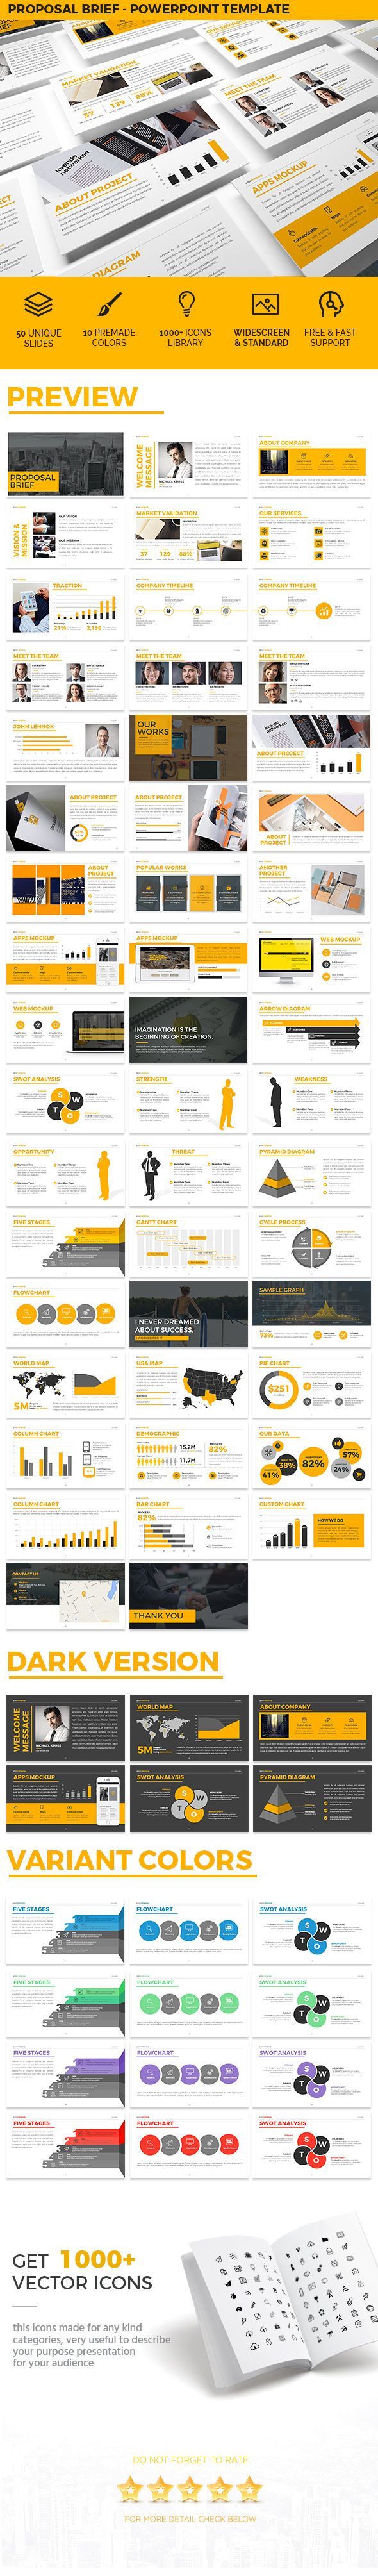 pin by maria alena on powerpoint templates pinterest keynote